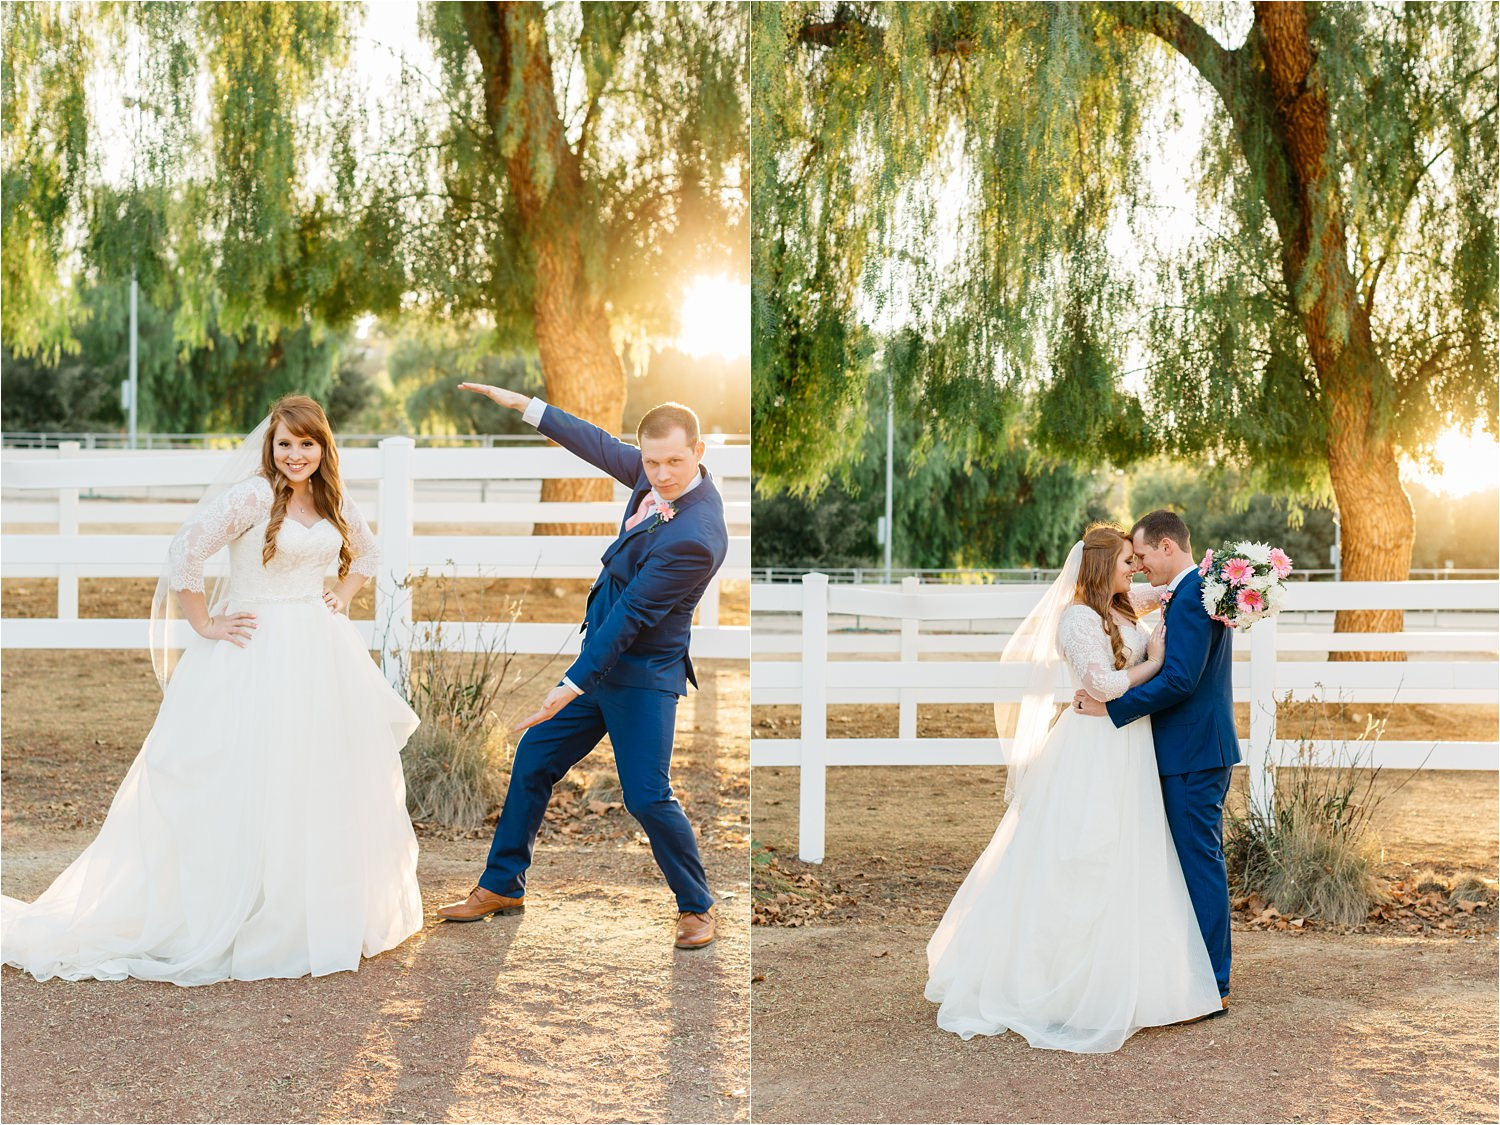 McCoy Equestrian Center Wedding - Bride and Groom Photos - Chino Hills, CA Wedding Photographer - https://brittneyhannonphotography.com